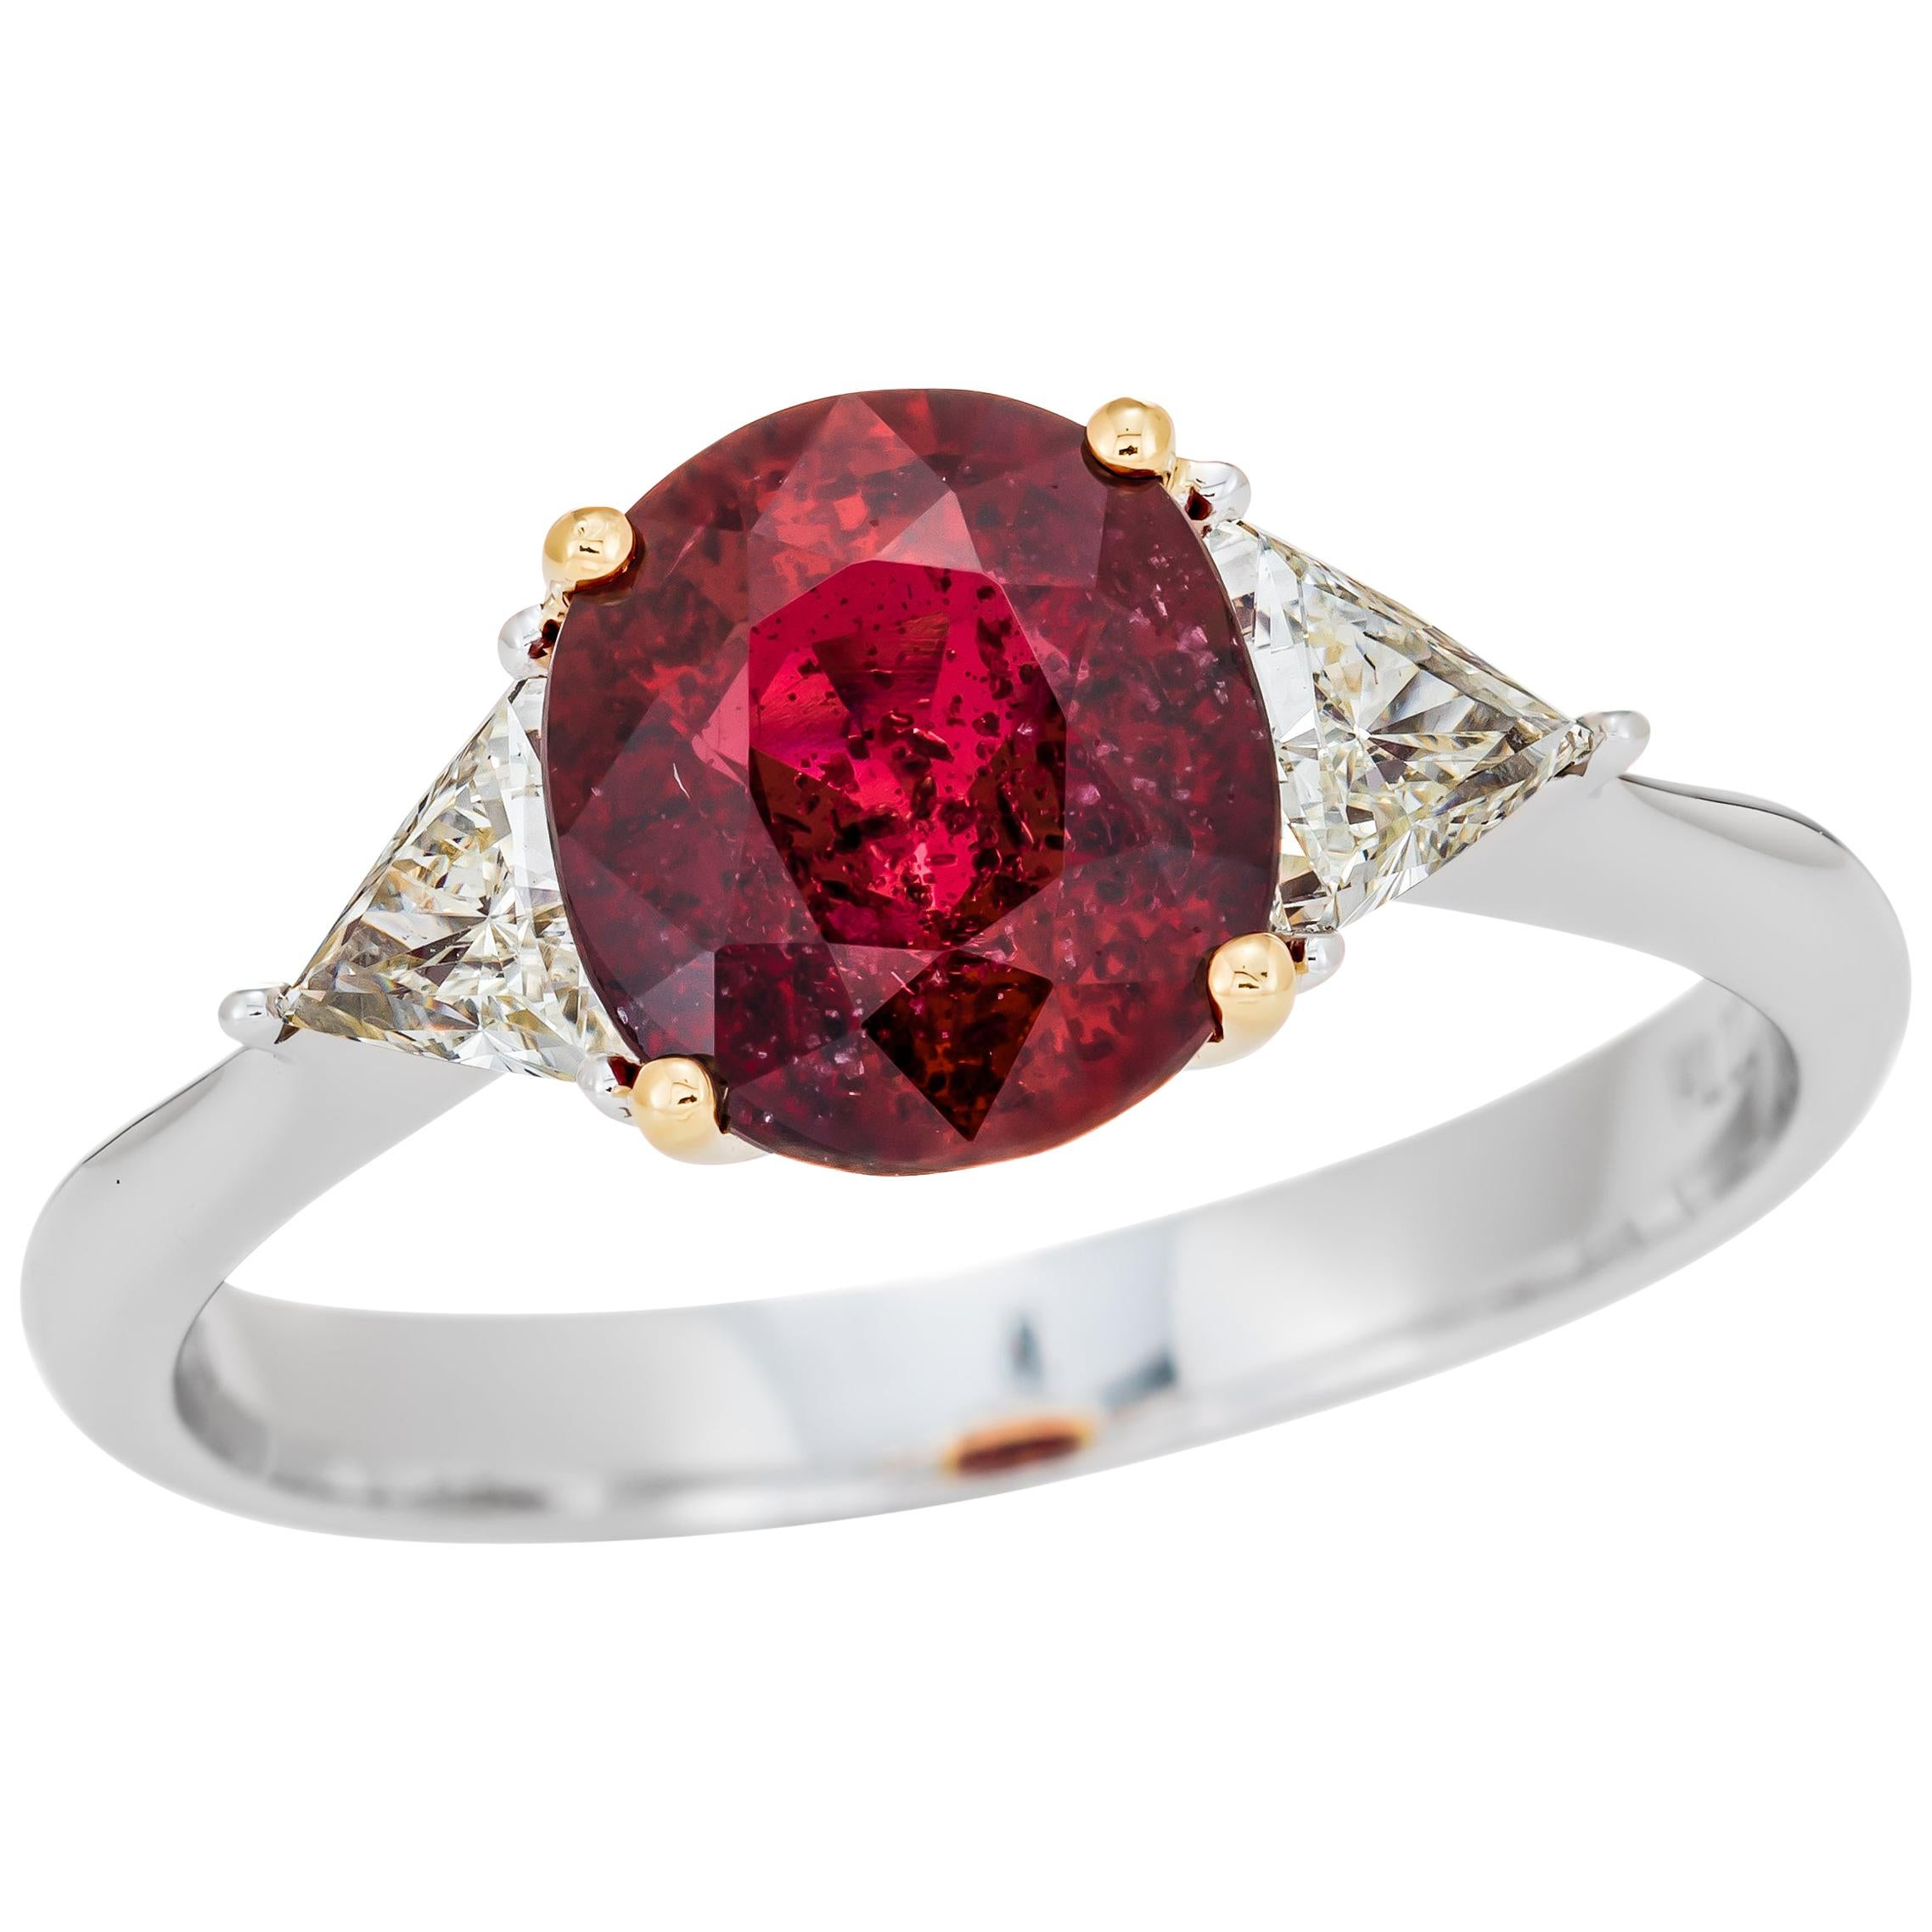 2.08 Carat Mozambique Red Ruby GIA Certified, Cushion Cut Ring